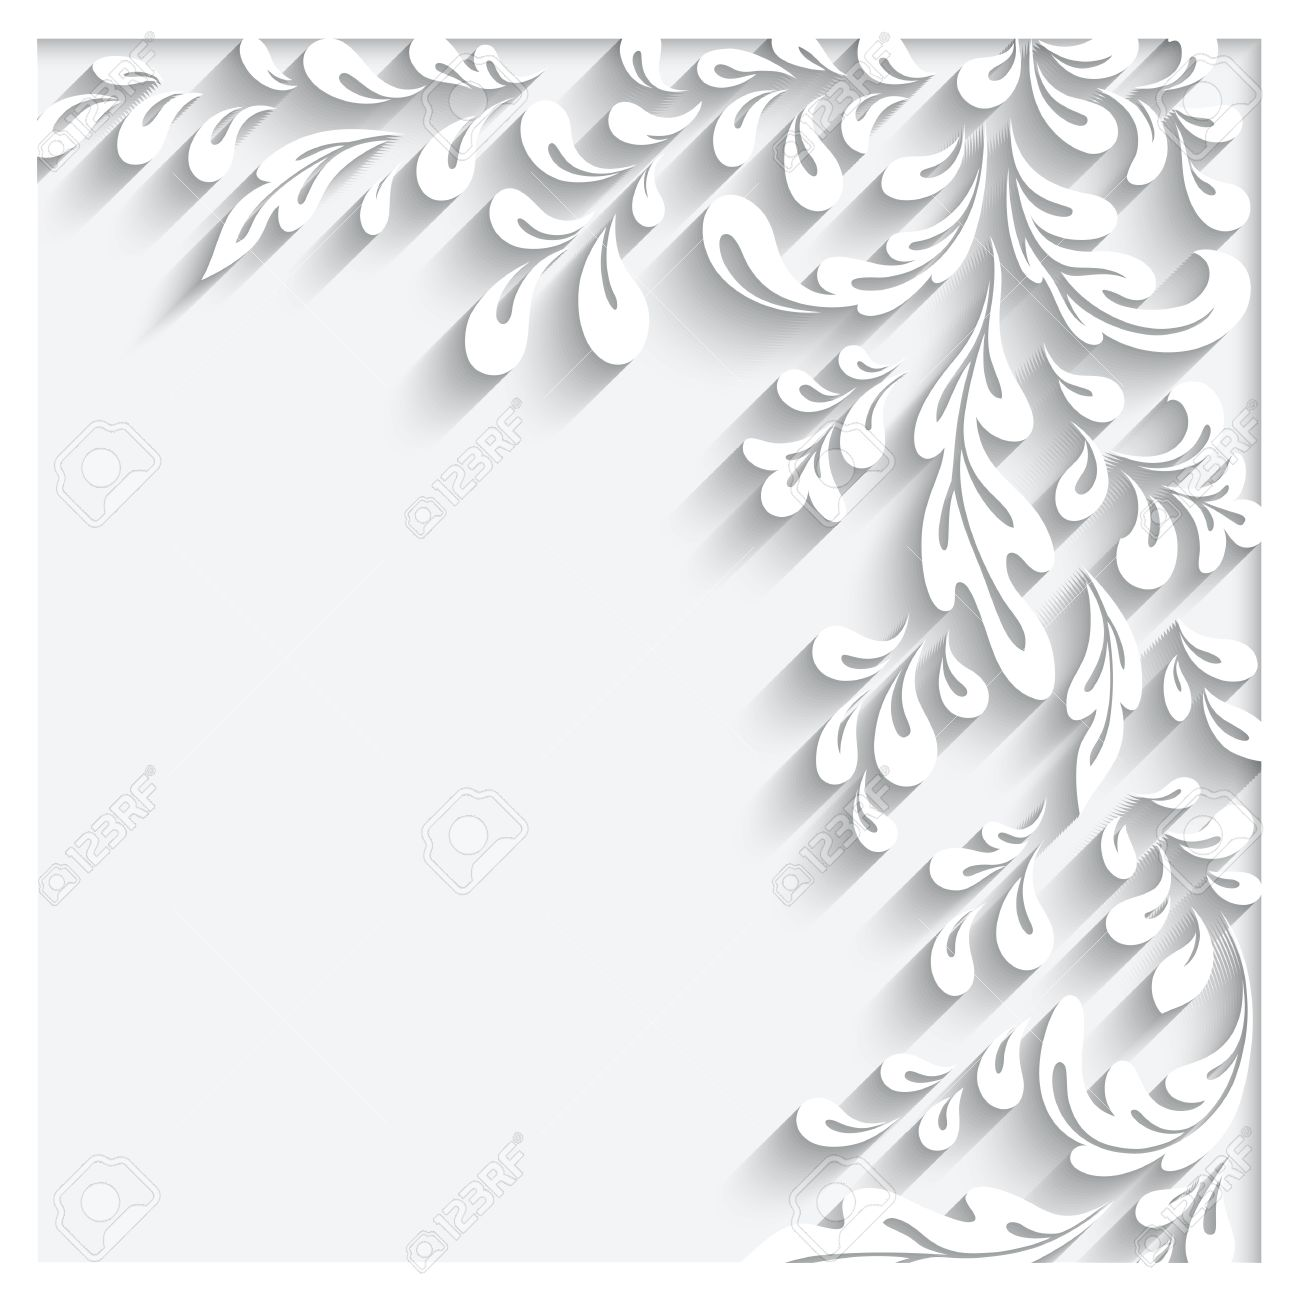 Abstract White Floral Background With Paper Swirls Royalty Free